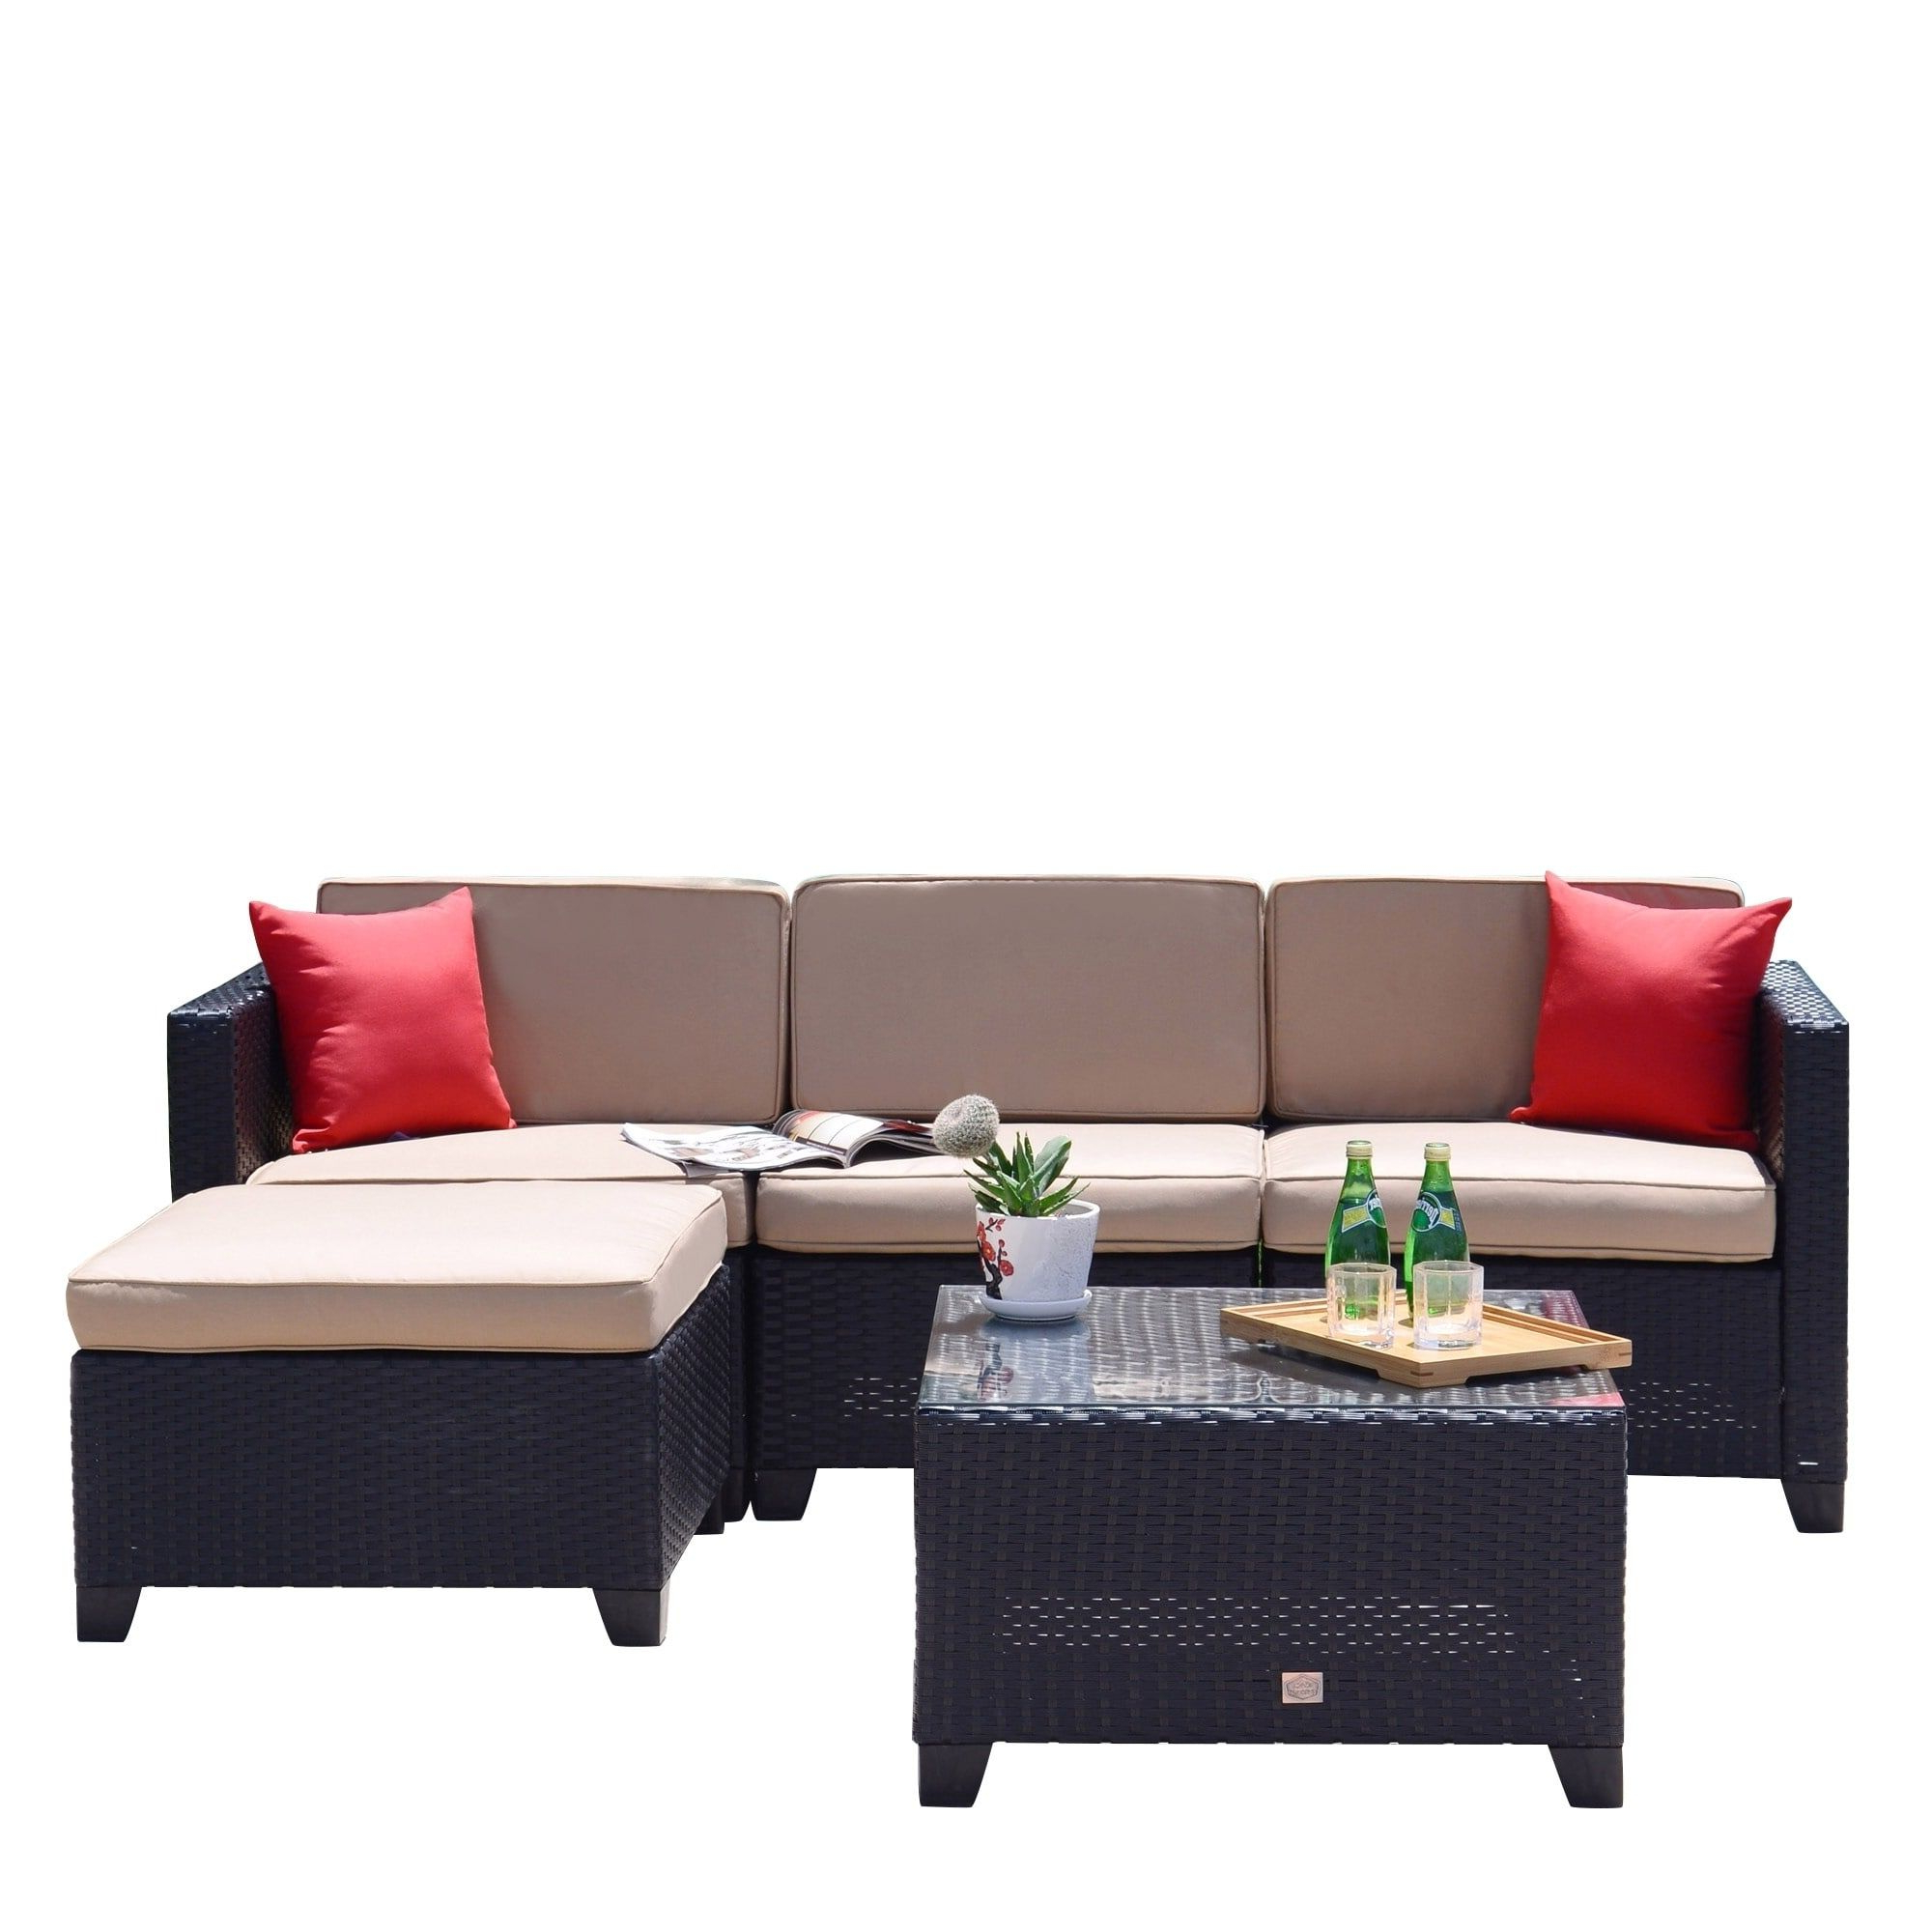 5 Pc Rattan Sofa Set Cushioned Sectional Outdoor Garden With Regard To Most Recent Furst Patio Sofas With Cushion (View 1 of 20)